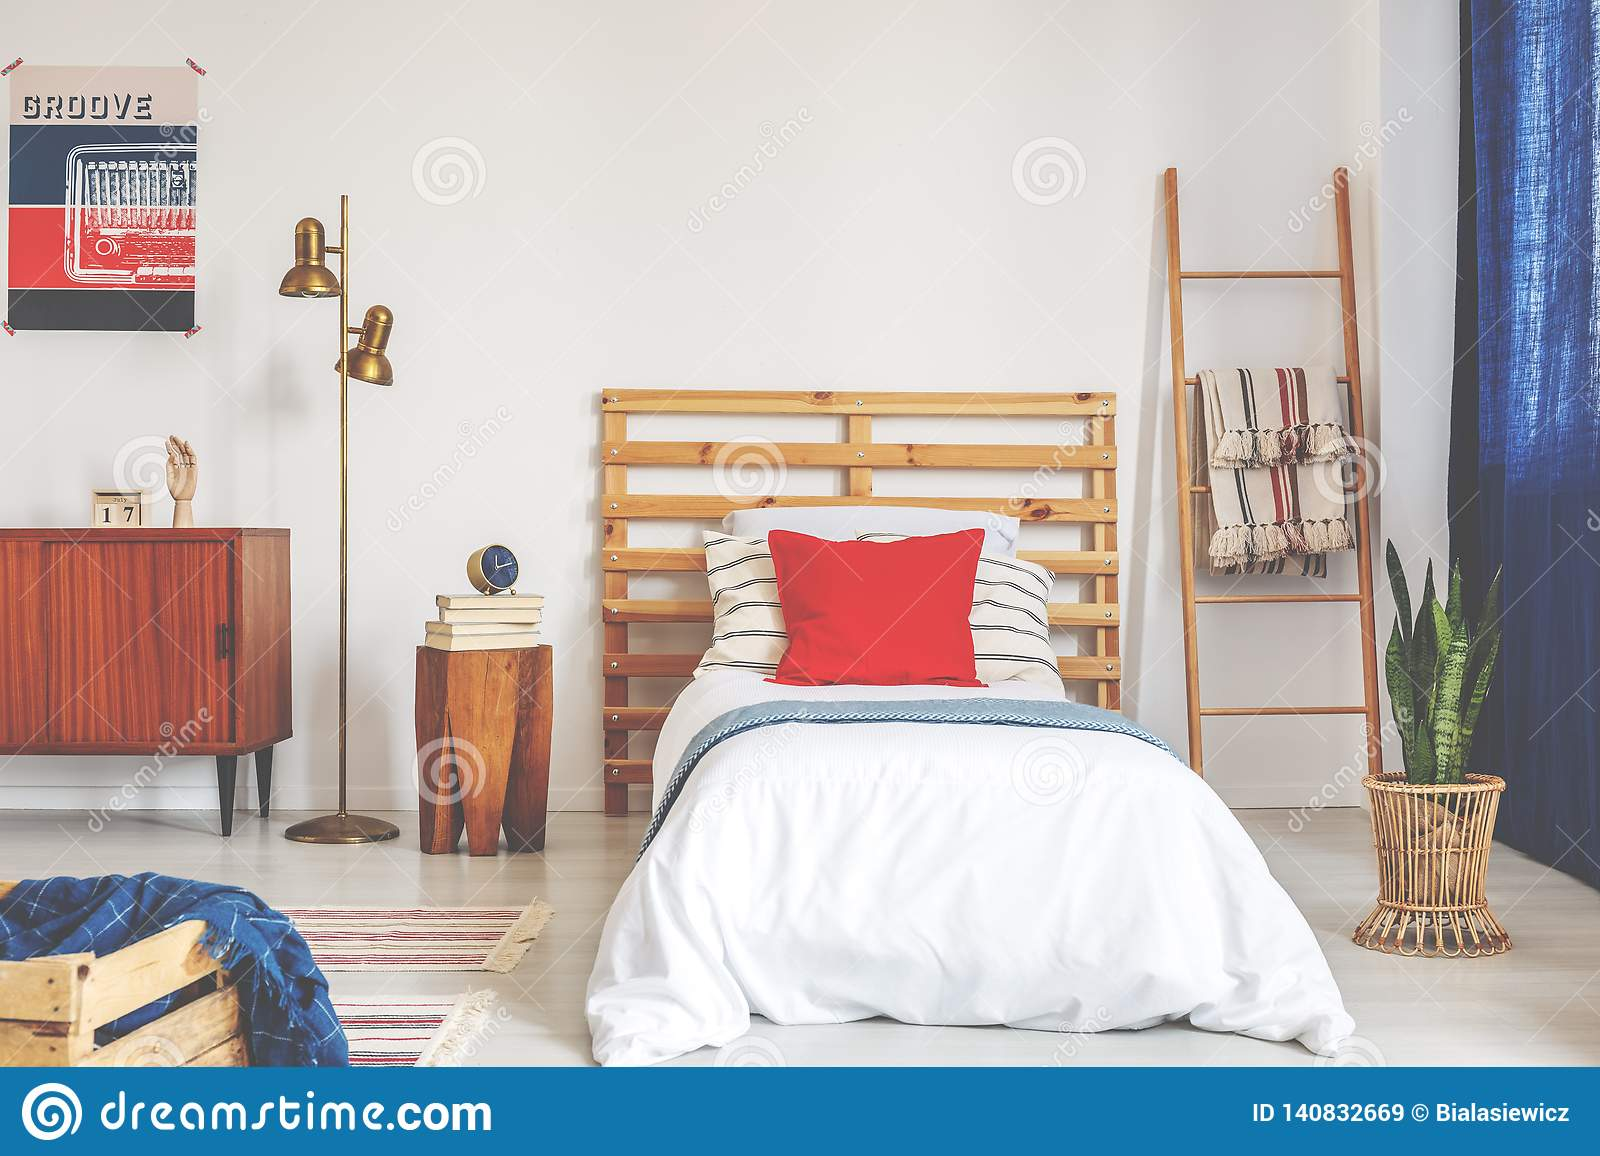 25 664 Vintage Bedroom Photos Free Royalty Free Stock Photos From Dreamstime